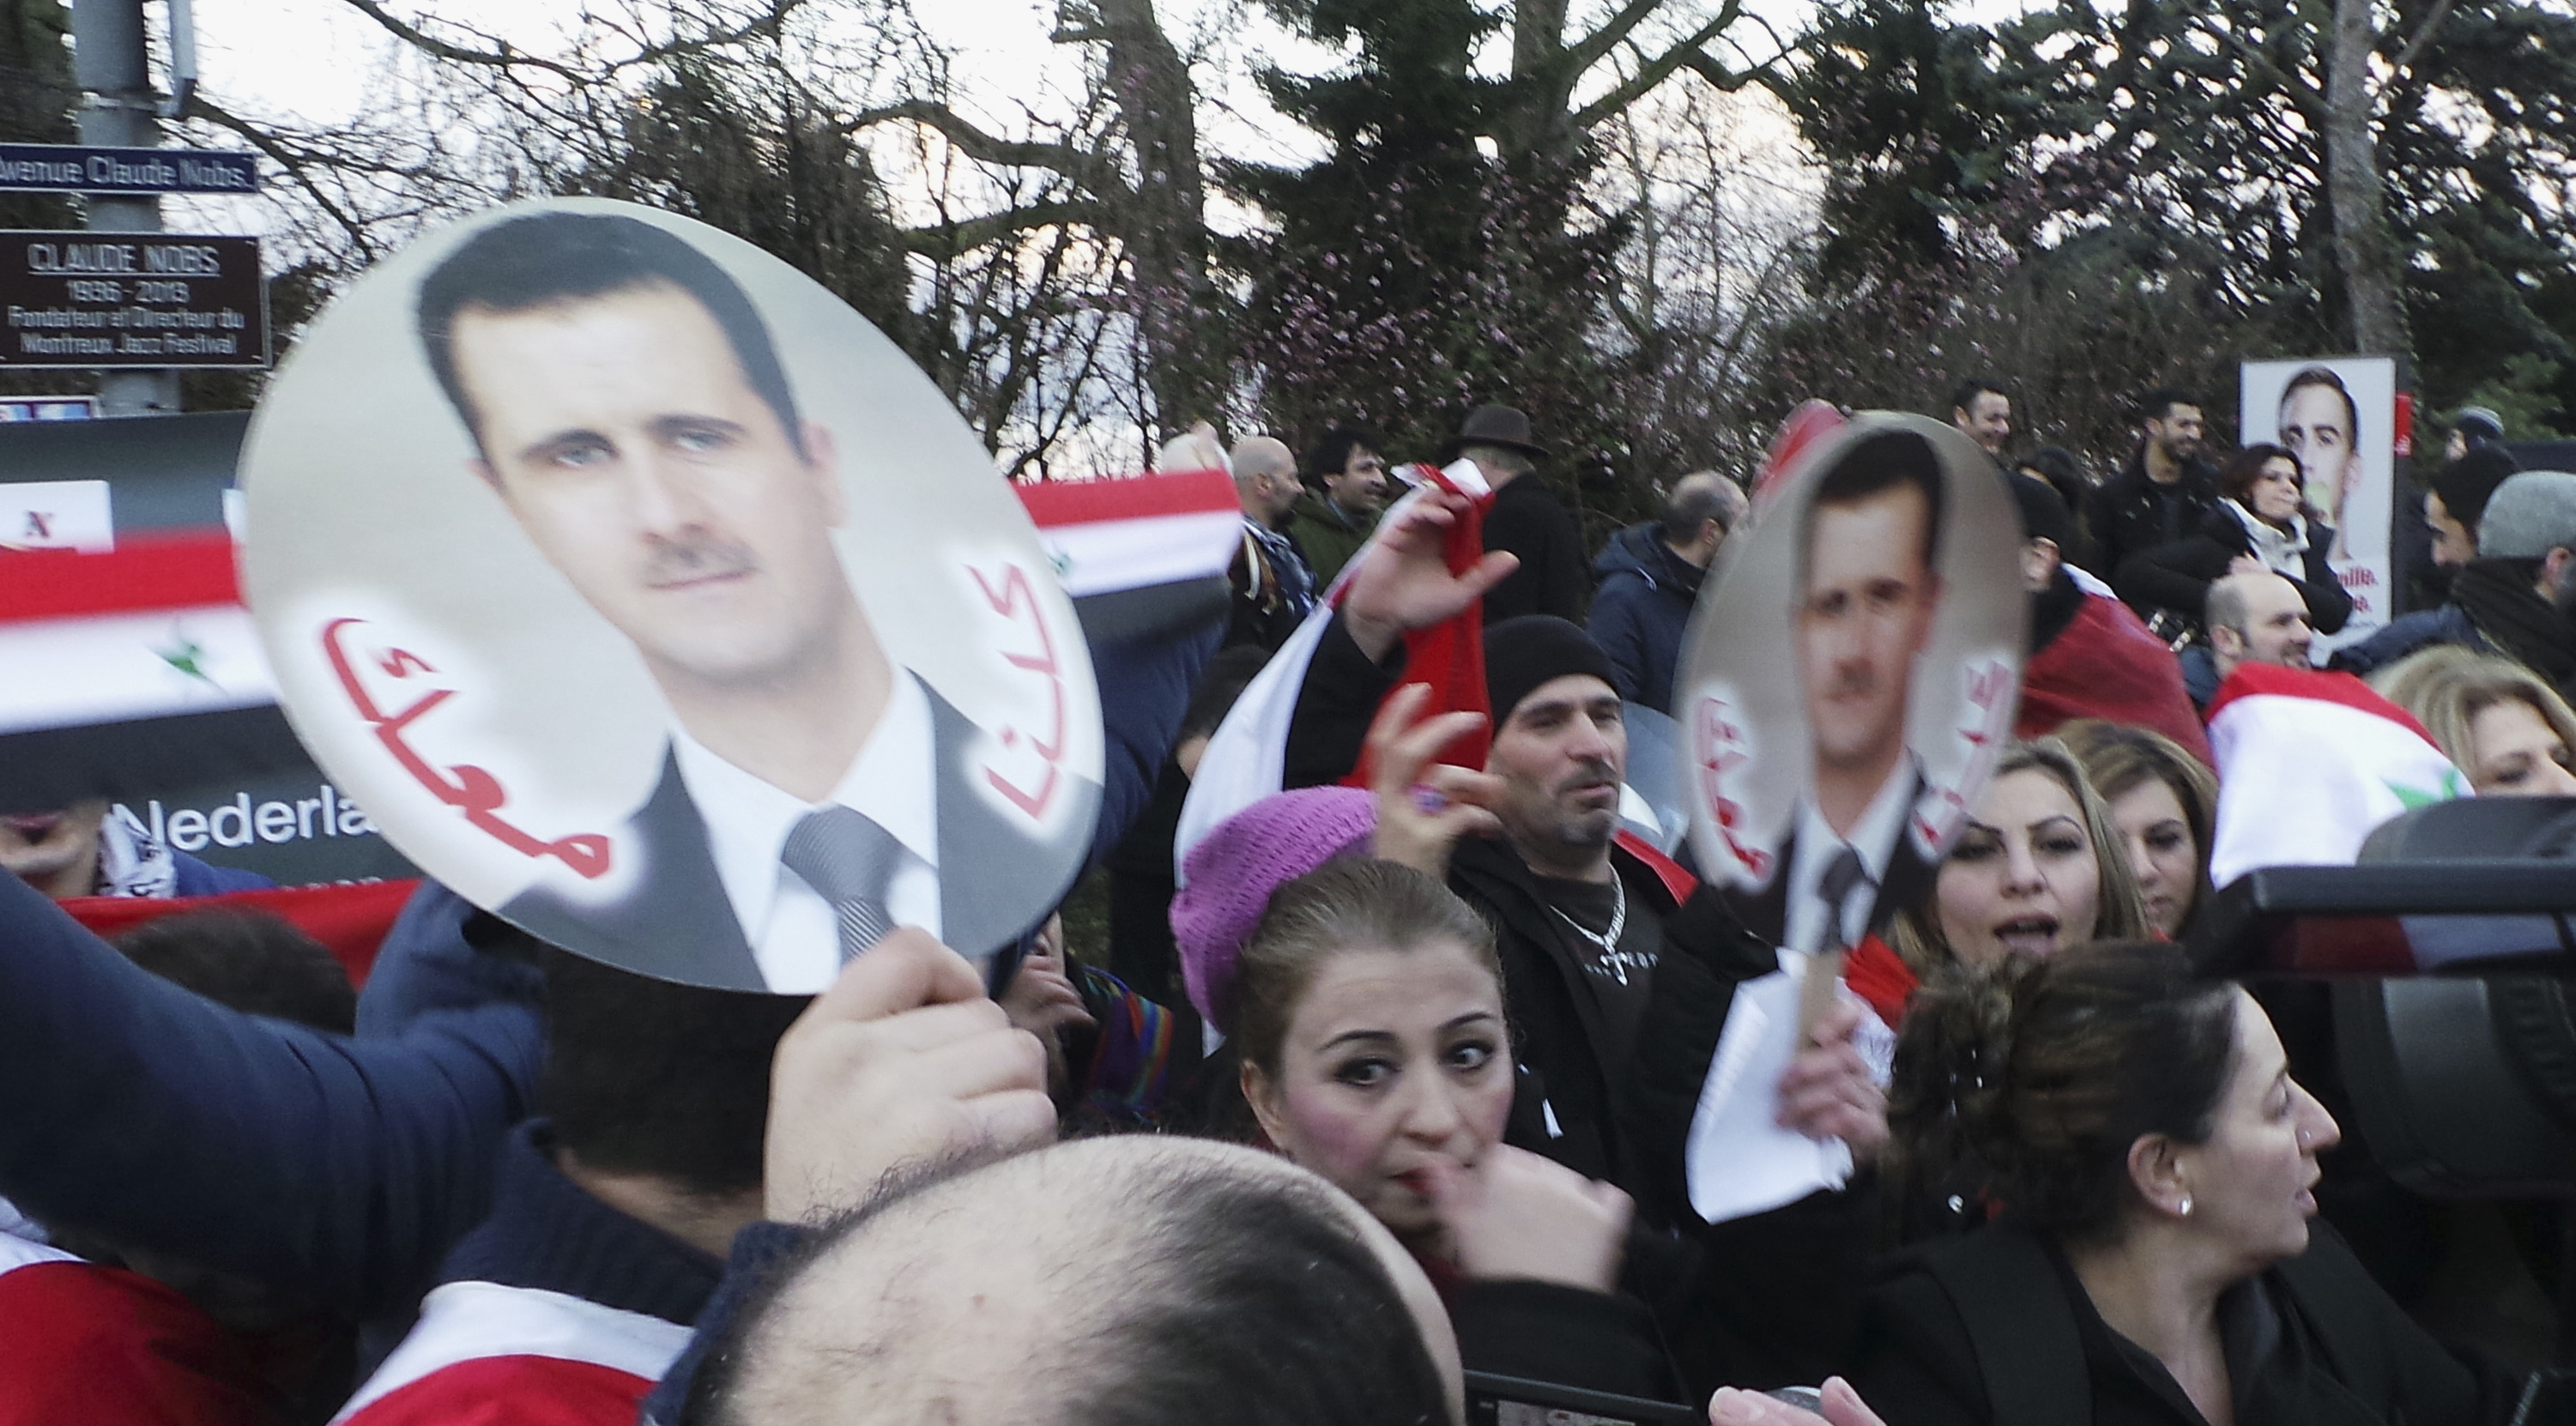 """A pro-Assad demonstrator carråy portraits of Syrian President Bashar al-Assad in front of the venue where the Syria peace conference is held, in Montreux January 22, 2014. Syria's government and opposition, meeting face to face for the first time at a U.N. peace conference, angrily spelled out their hostility on Wednesday as world powers also restated contrasting views on the future of President Bashar al-Assad. Signs read, """"We are all with you""""."""